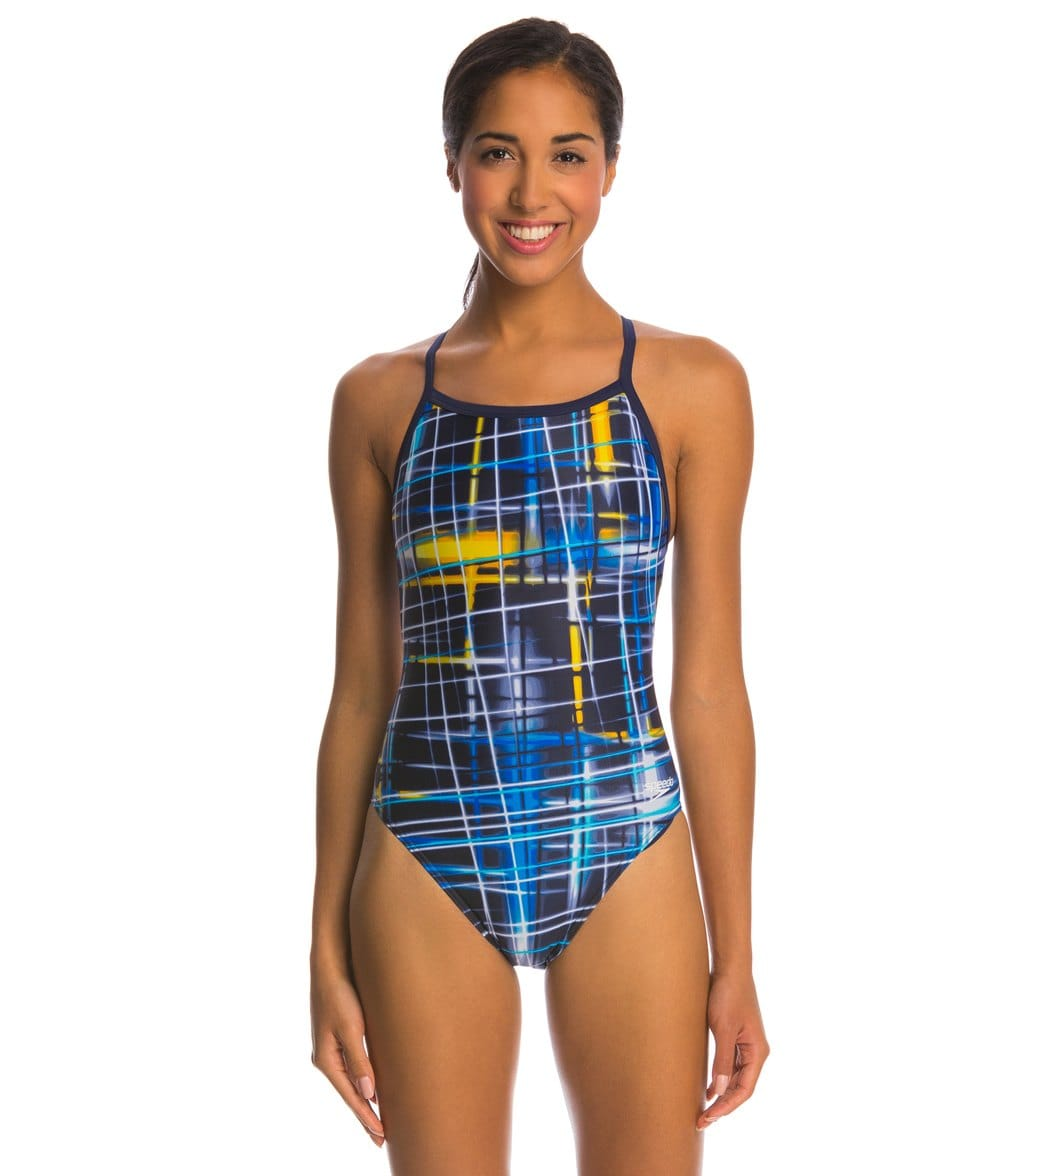 8a3fe8f9eb Speedo PowerFlex Eco Laser Sticks Pulse Back One Piece Swimsuit at  SwimOutlet.com - Free Shipping